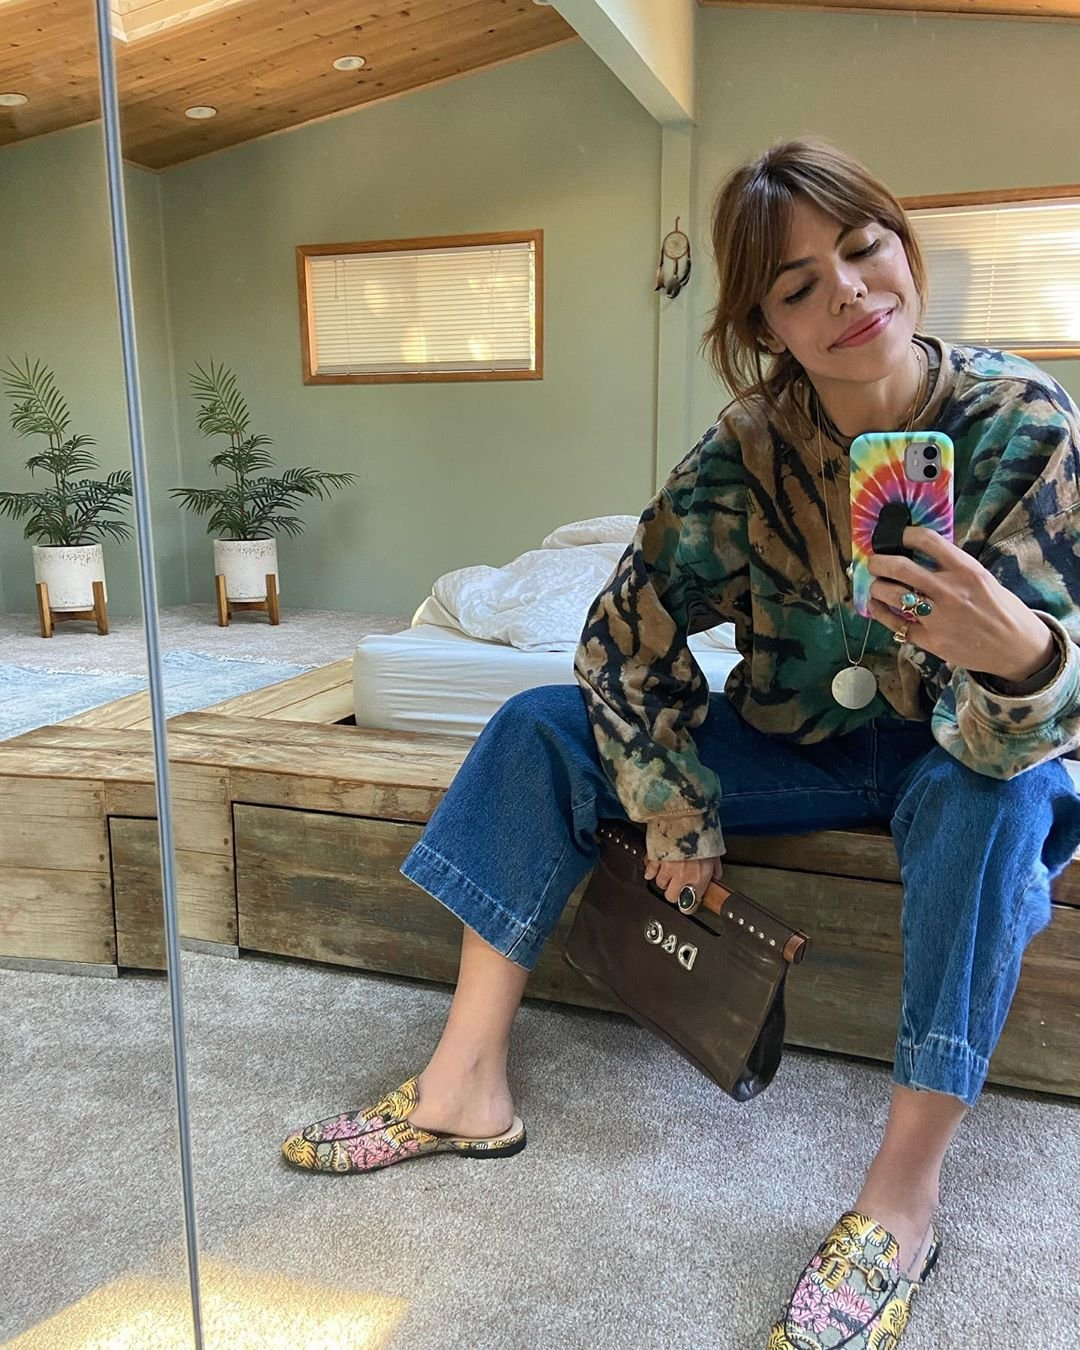 It girls - Curtain bangs - Cortes de cabelo - Inverno - Street Style - https://stealthelook.com.br